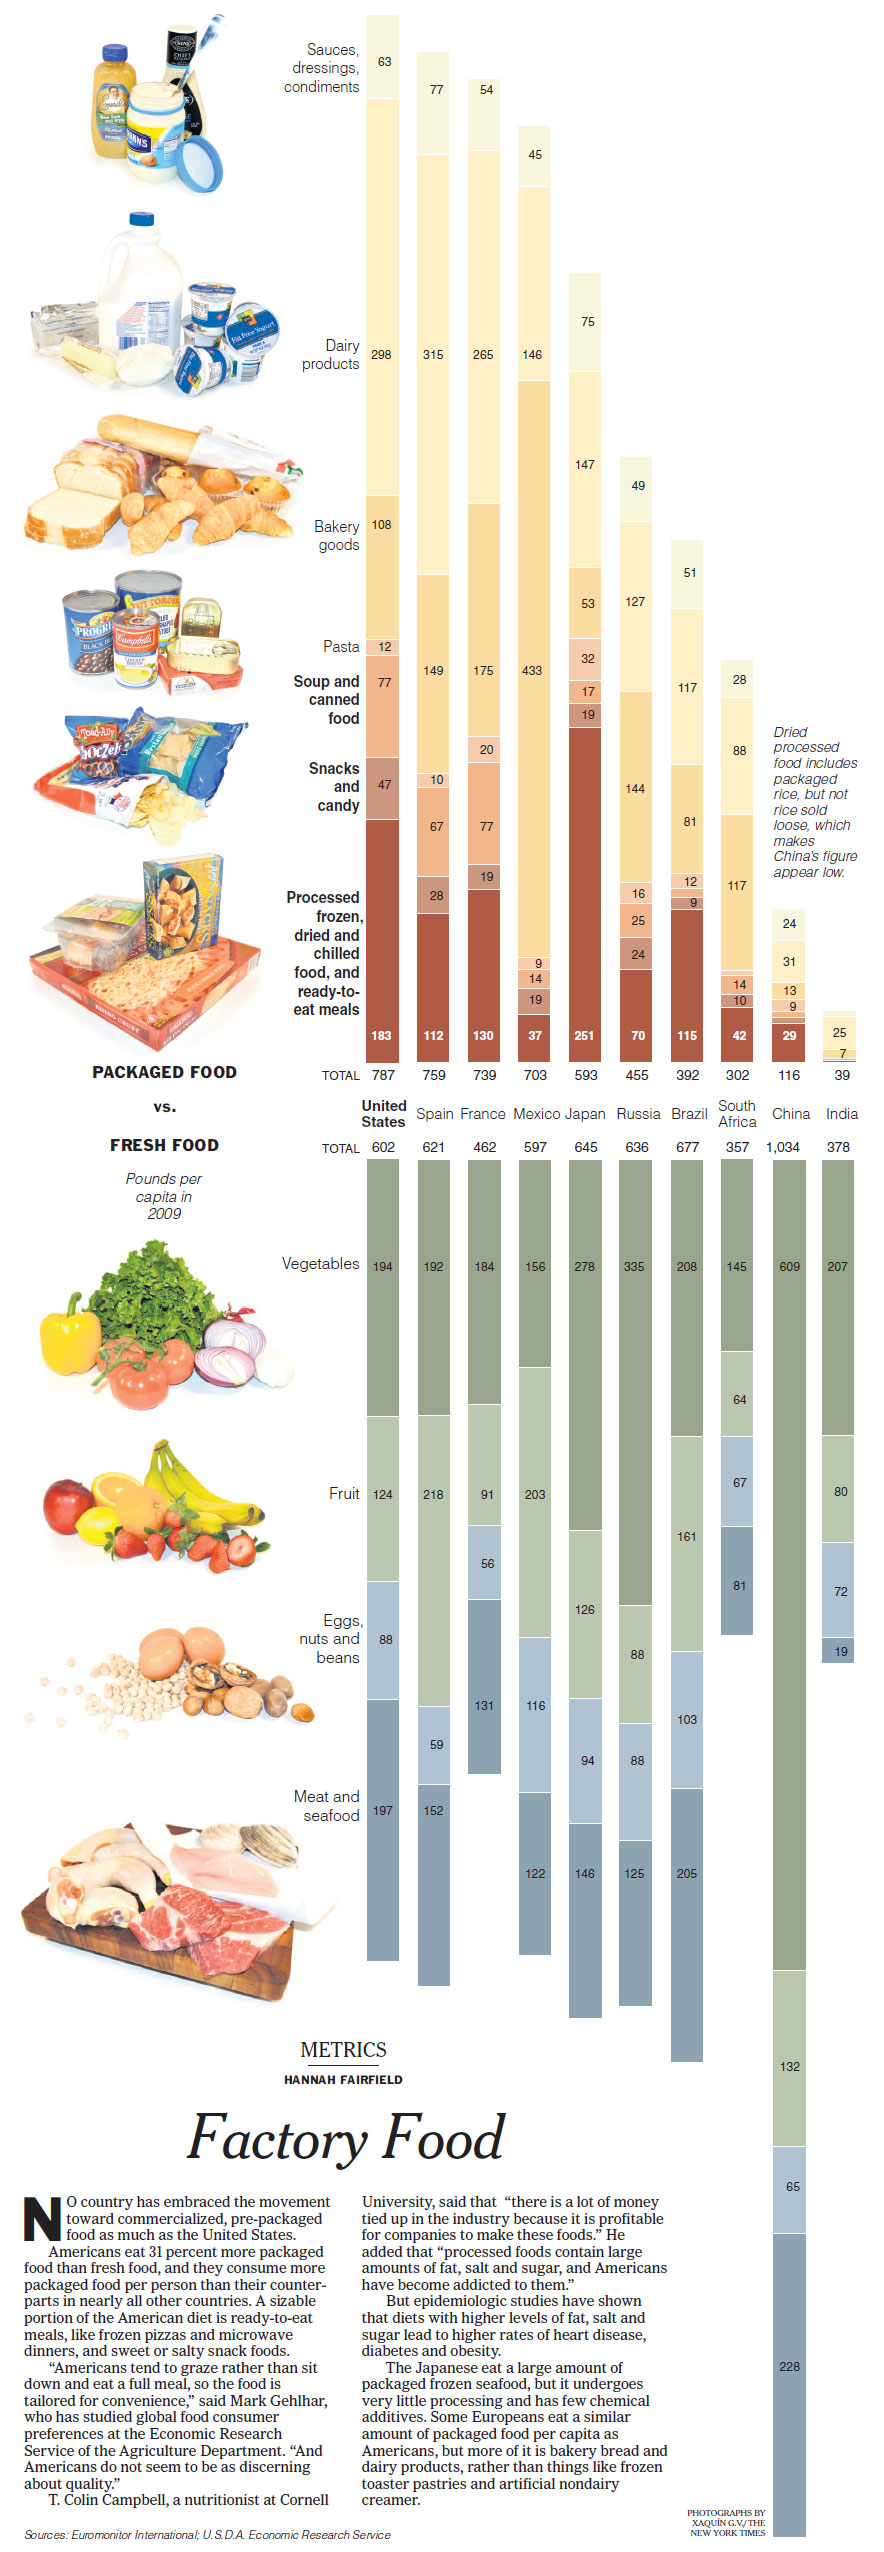 Nytimesprocessed food chart